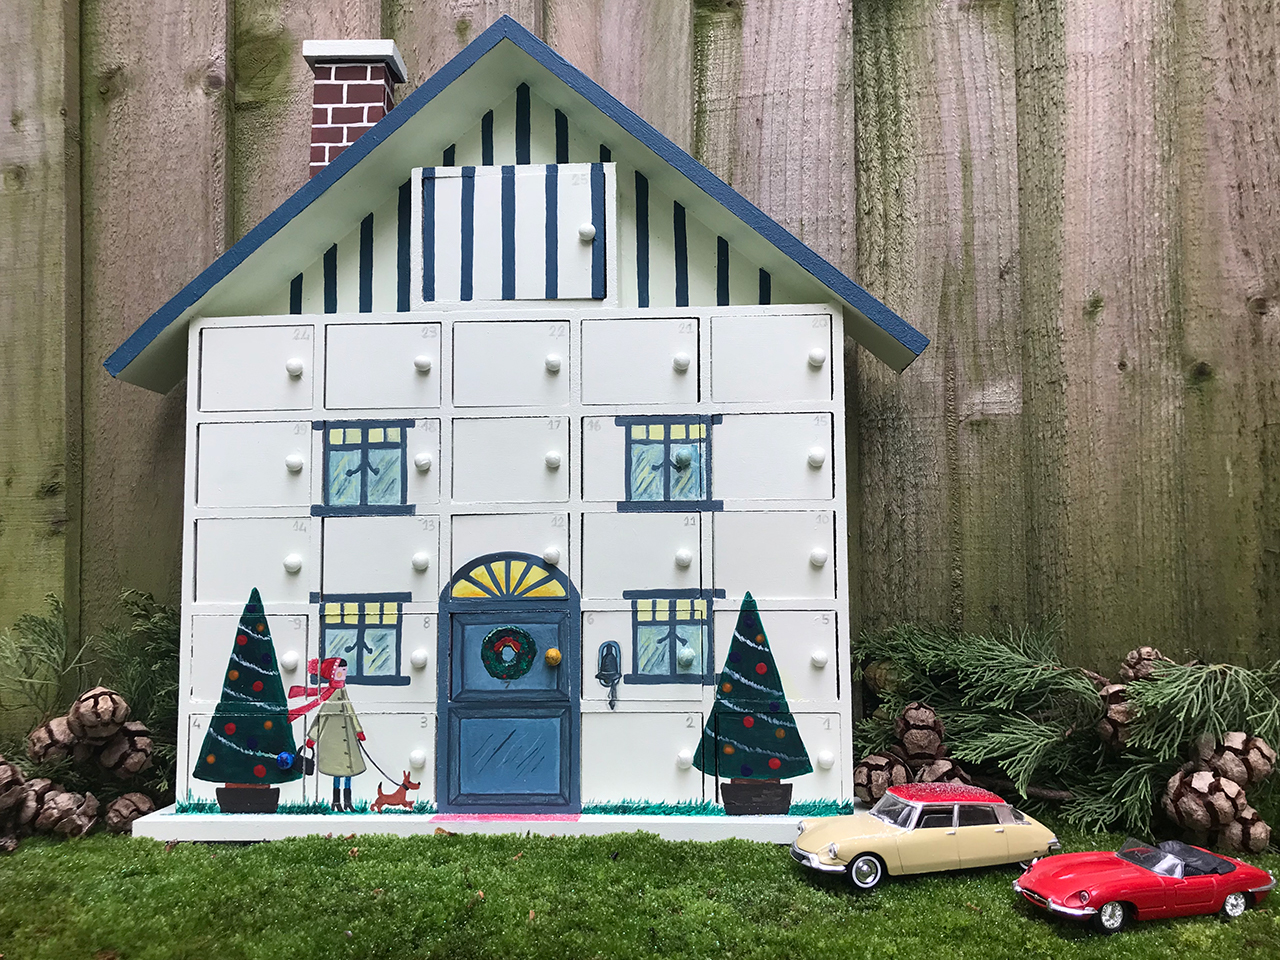 My painted wooden advent house calendar